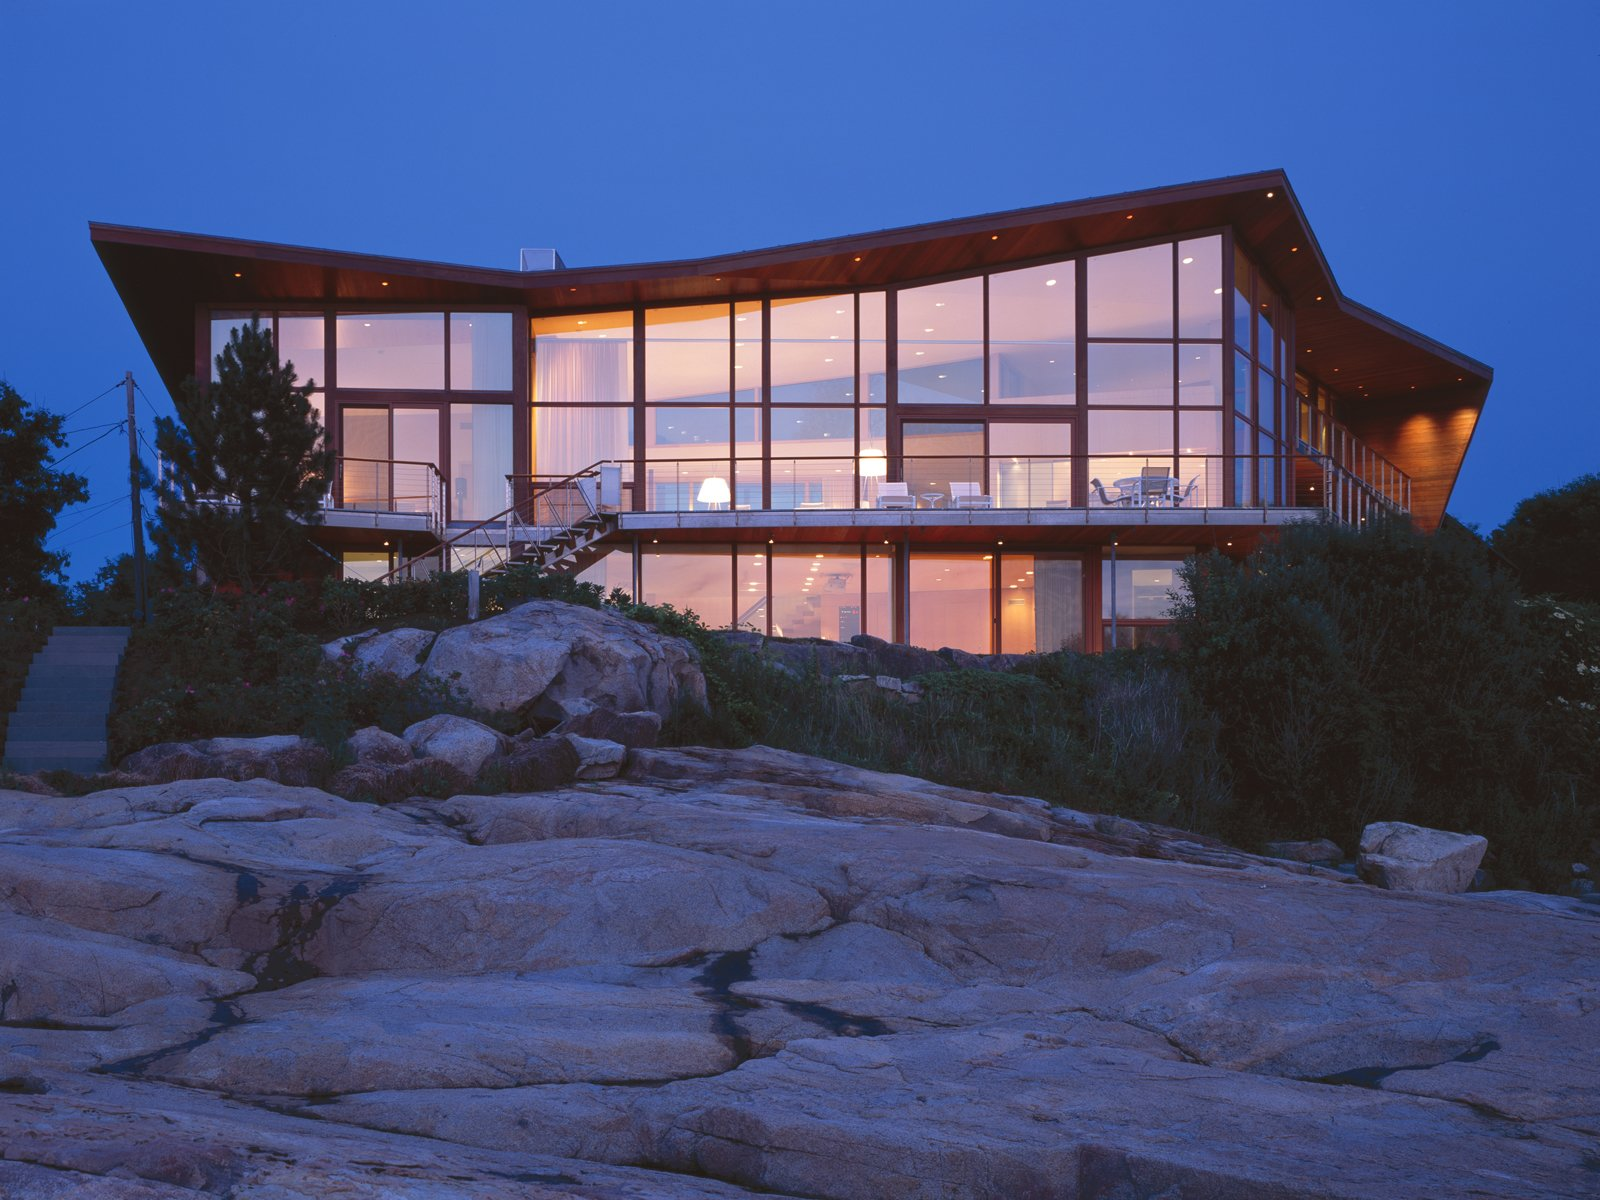 #JIBHouse #modern #structure #form #exterior #outside #outdoors #view #angles #window #landscape #lighting #staircase #Glouchester #AtlanticOcean #2004 #CharlesRoseArchitects  JIB House